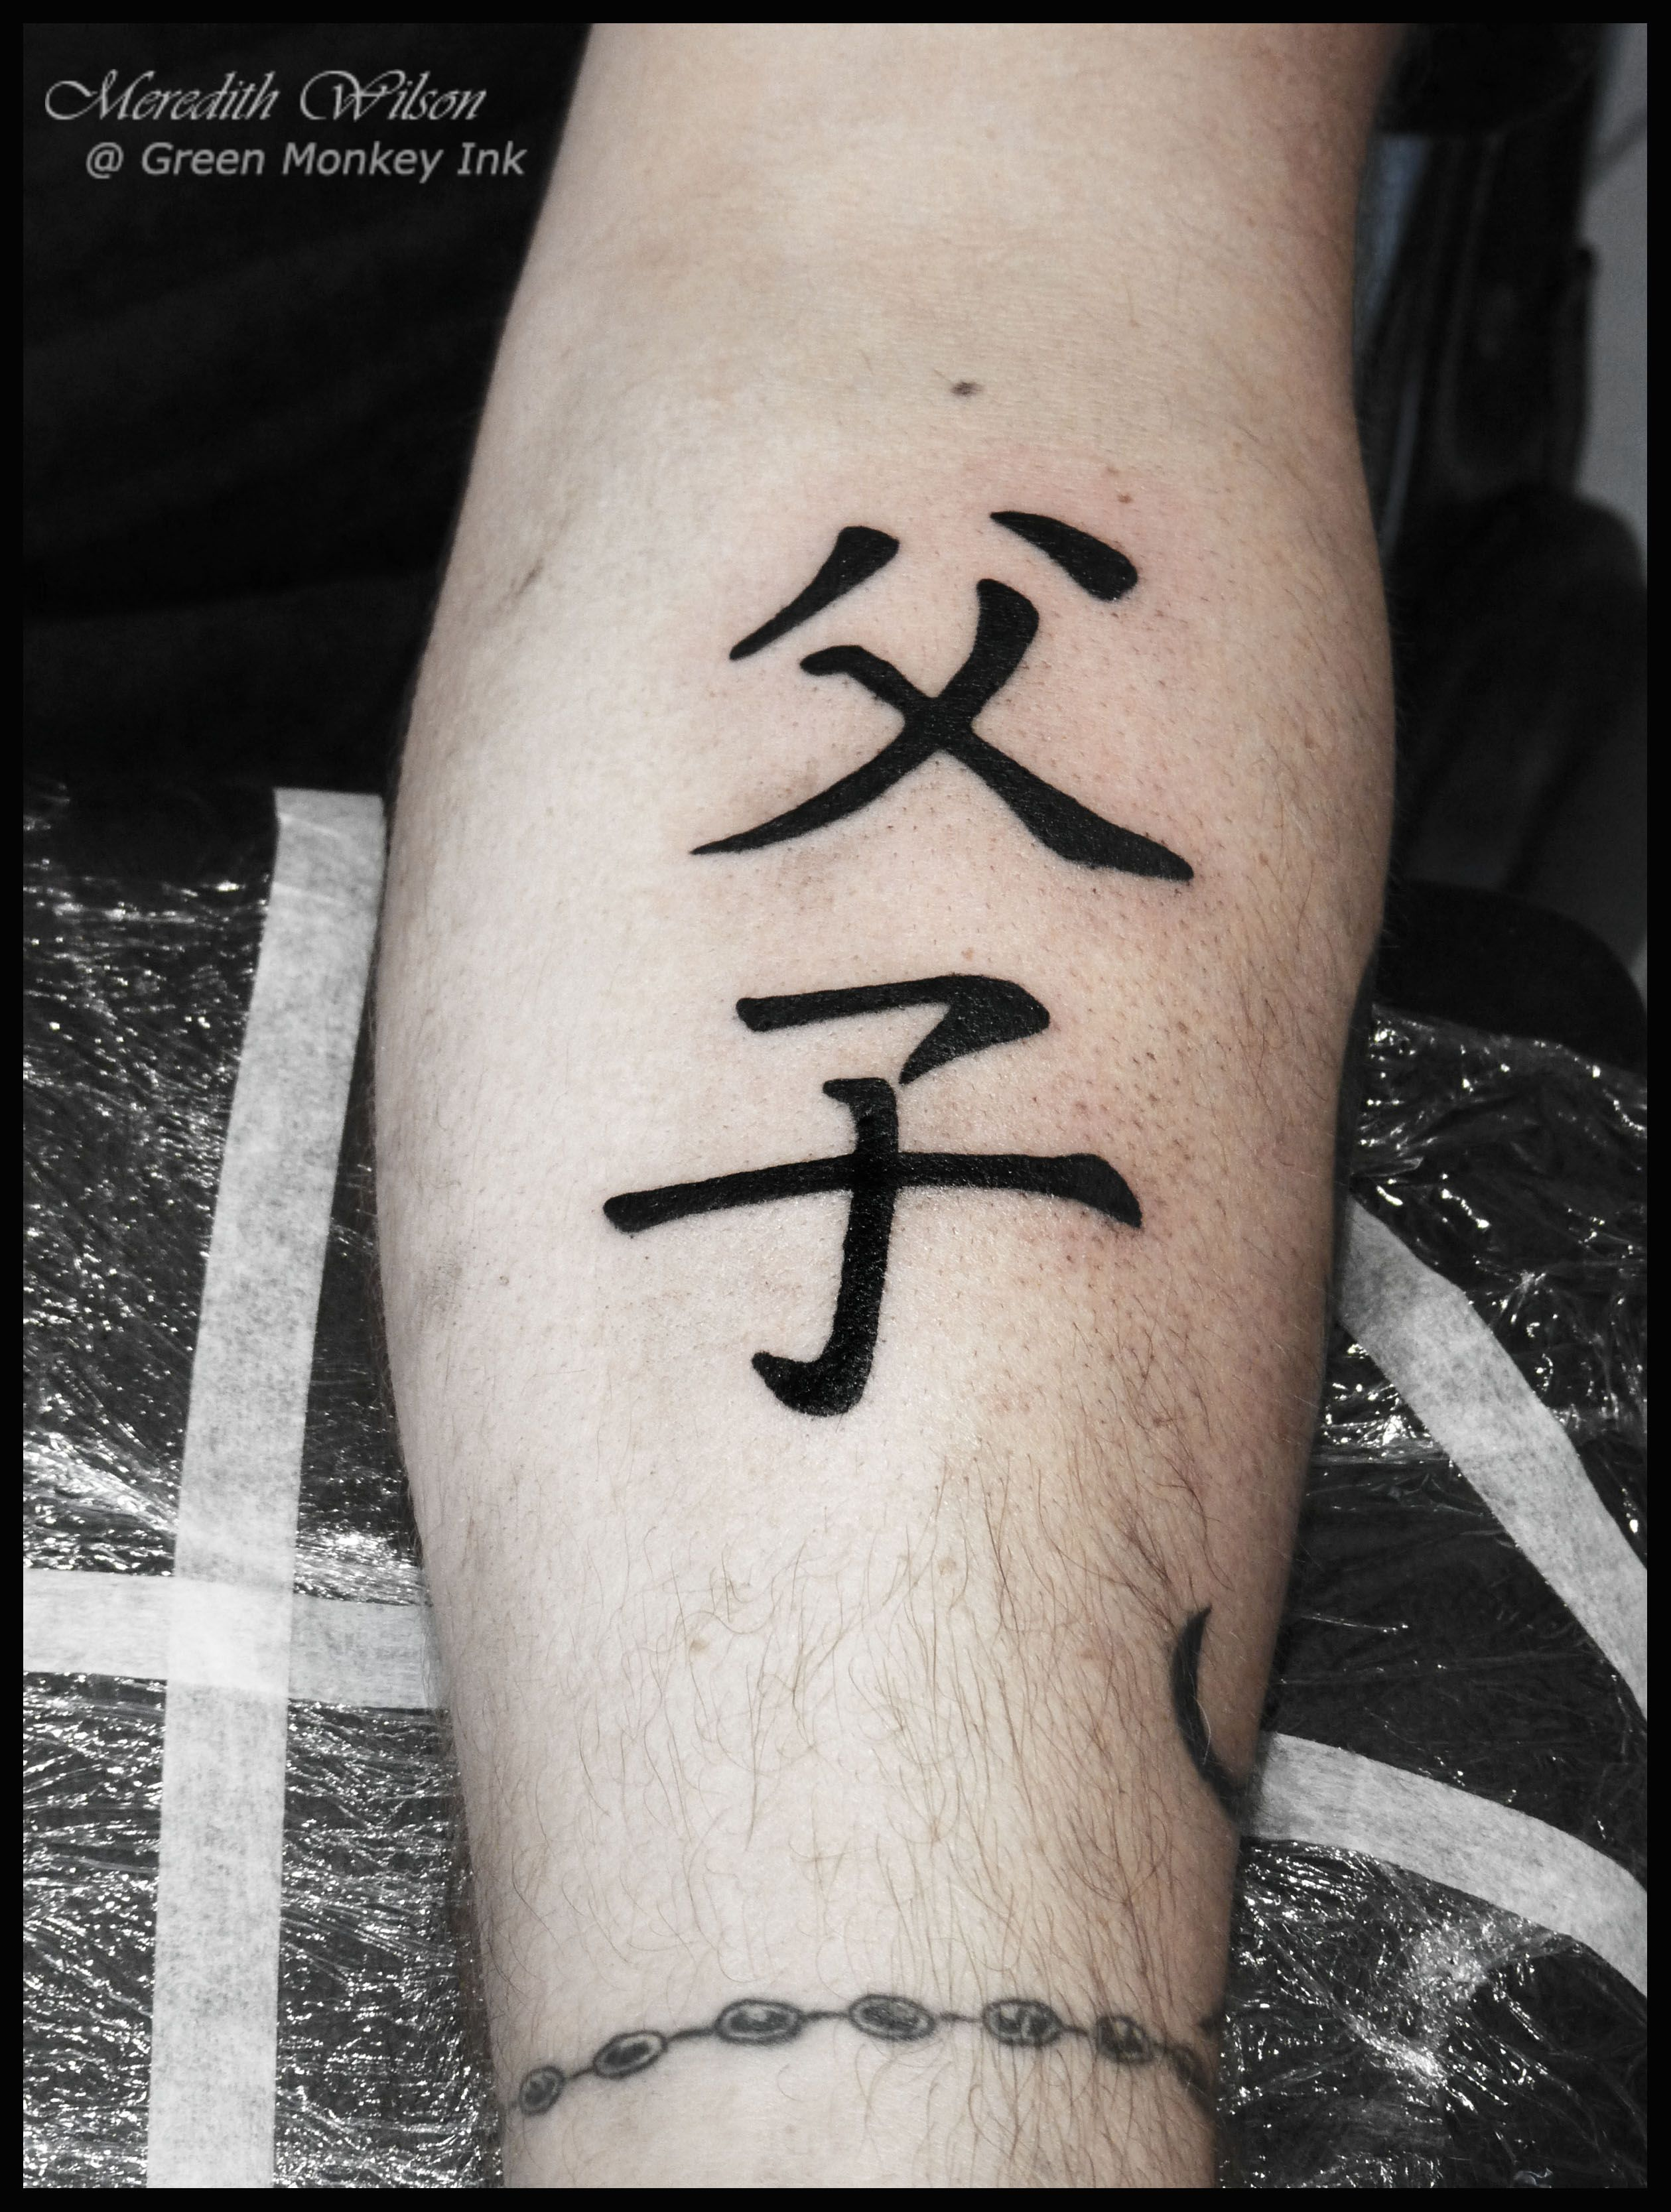 Father Son Japanese Tattoo Greenmonkeyink Tattoos Tattoo Tattoodesigns Ink Tattooideas Japanese Tattoo Inspirational Tattoos Tattoos